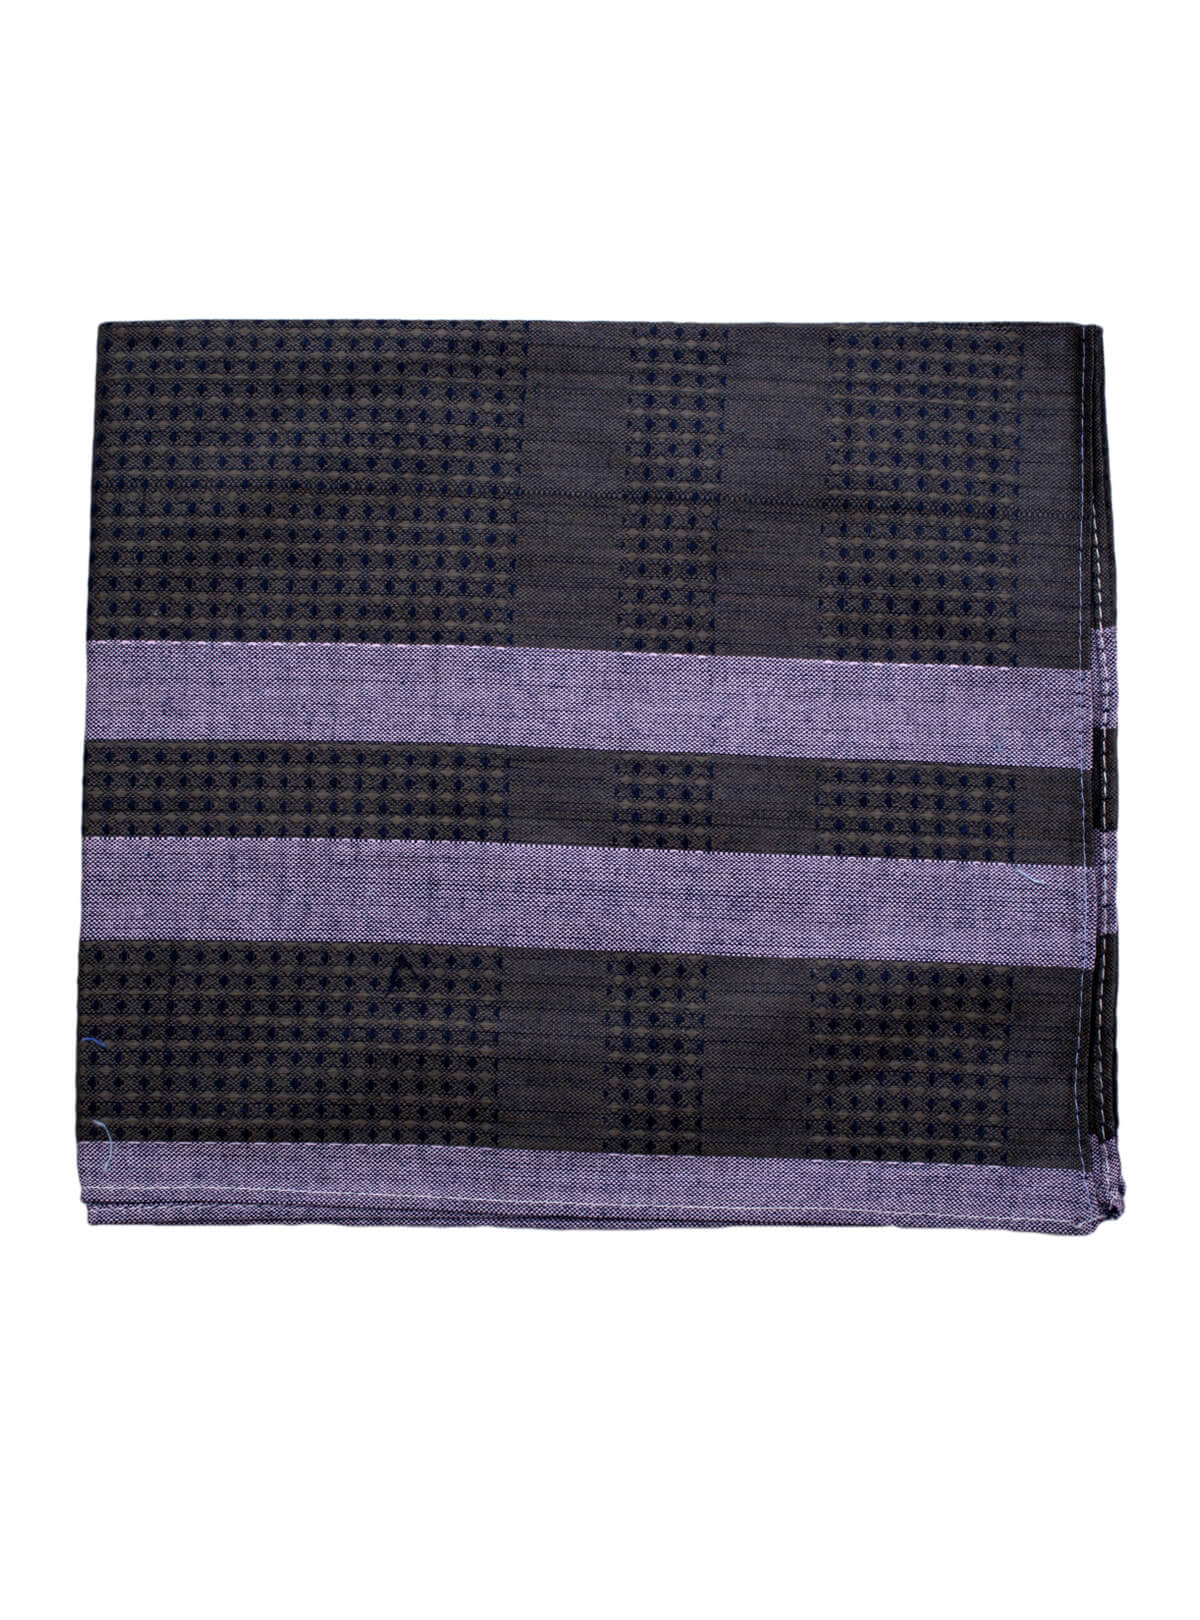 Black Cotton Handkerchief